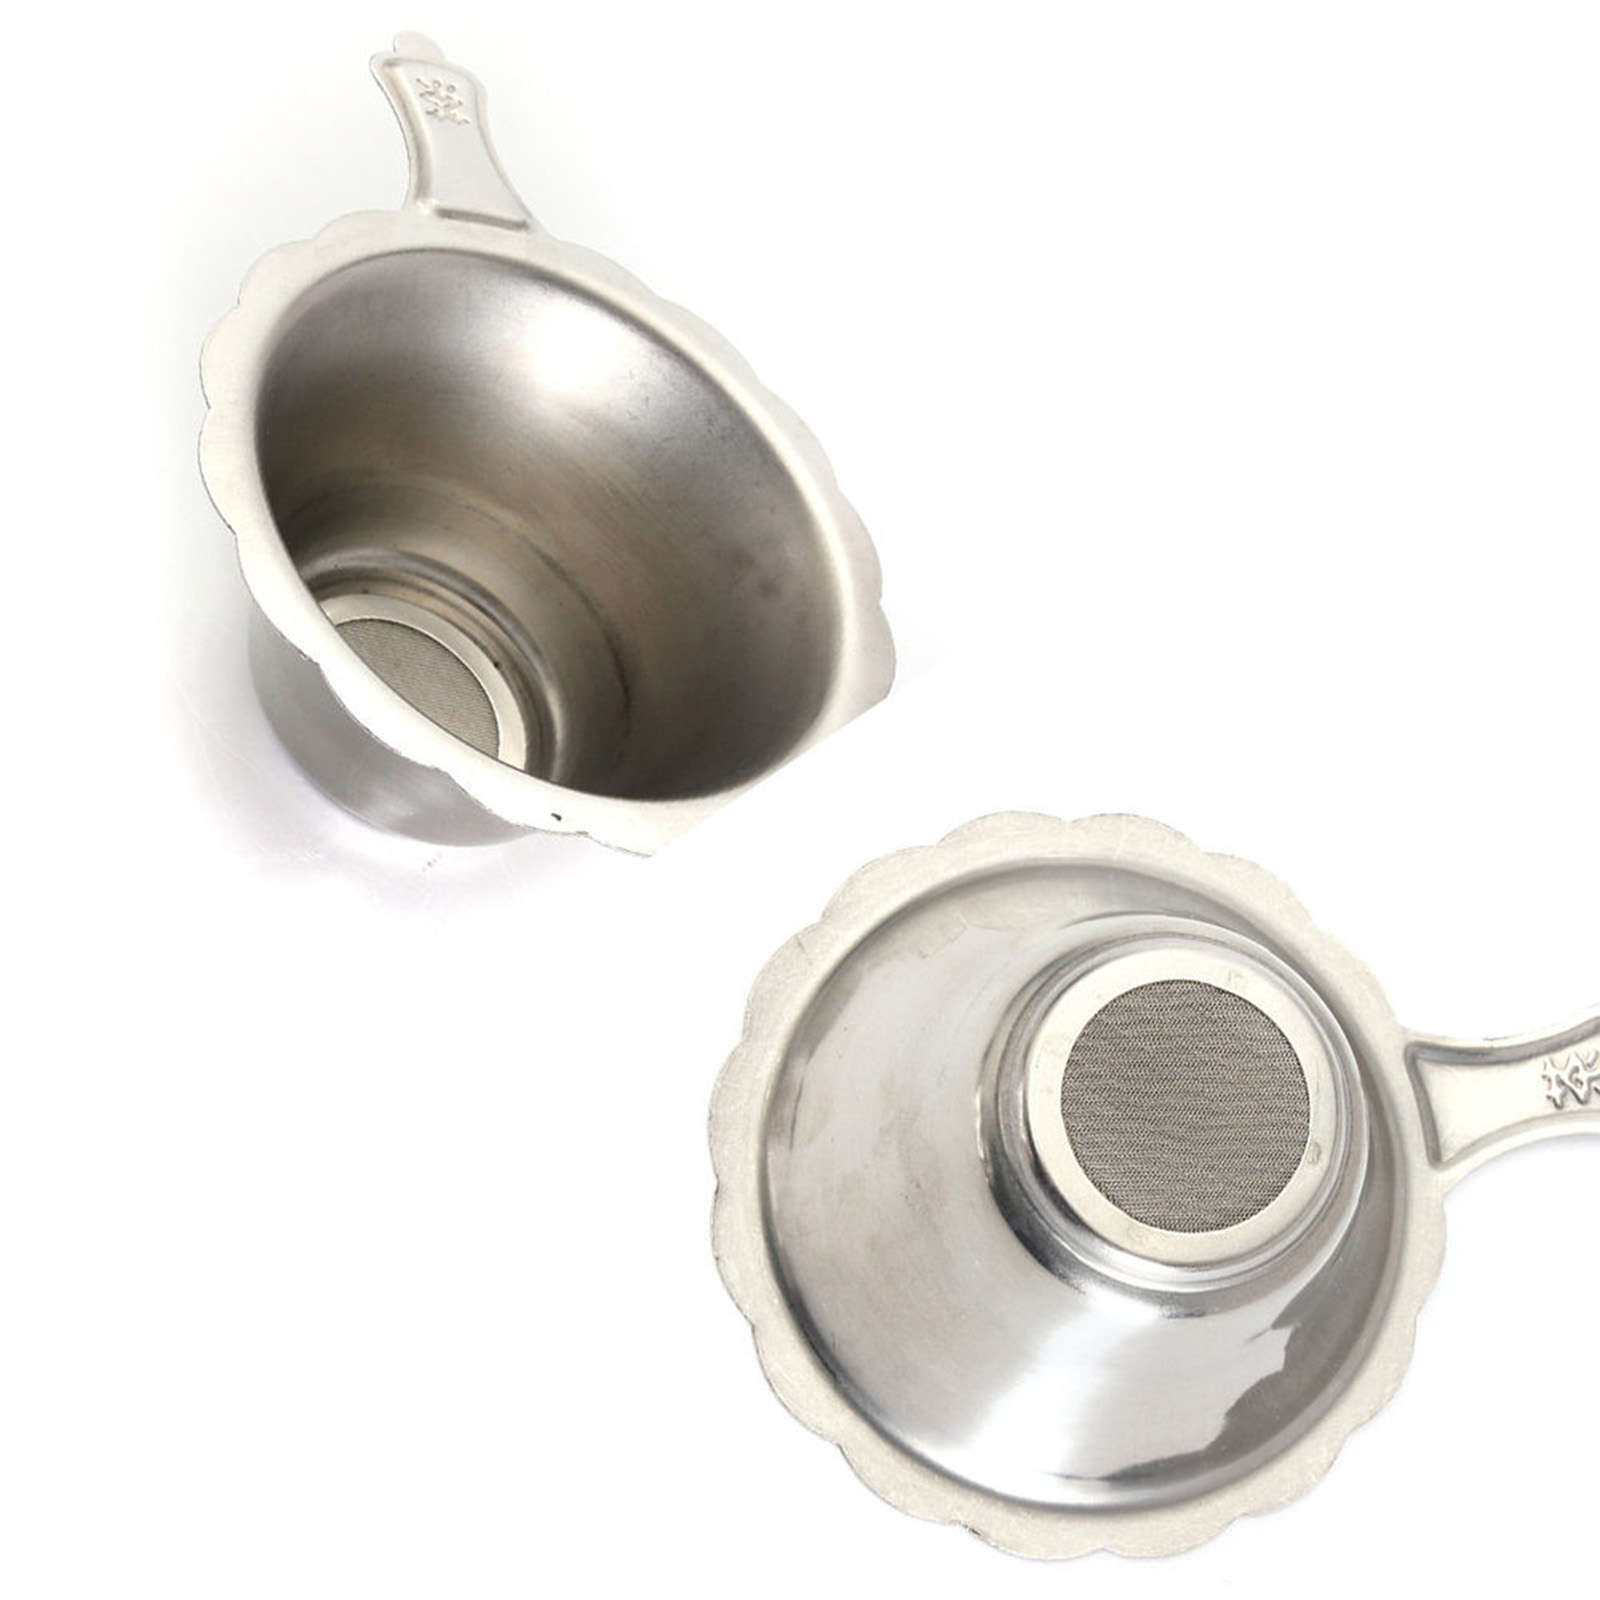 Reusable Stainless Steel Tea Infuser Basket Fine Mesh Tea Strainer  Filters for Loose Tea Leaf Drinkware Kitchen AccessoriesReusable Stainless Steel Tea Infuser Basket Fine Mesh Tea Strainer  Filters for Loose Tea Leaf Drinkware Kitchen Accessories